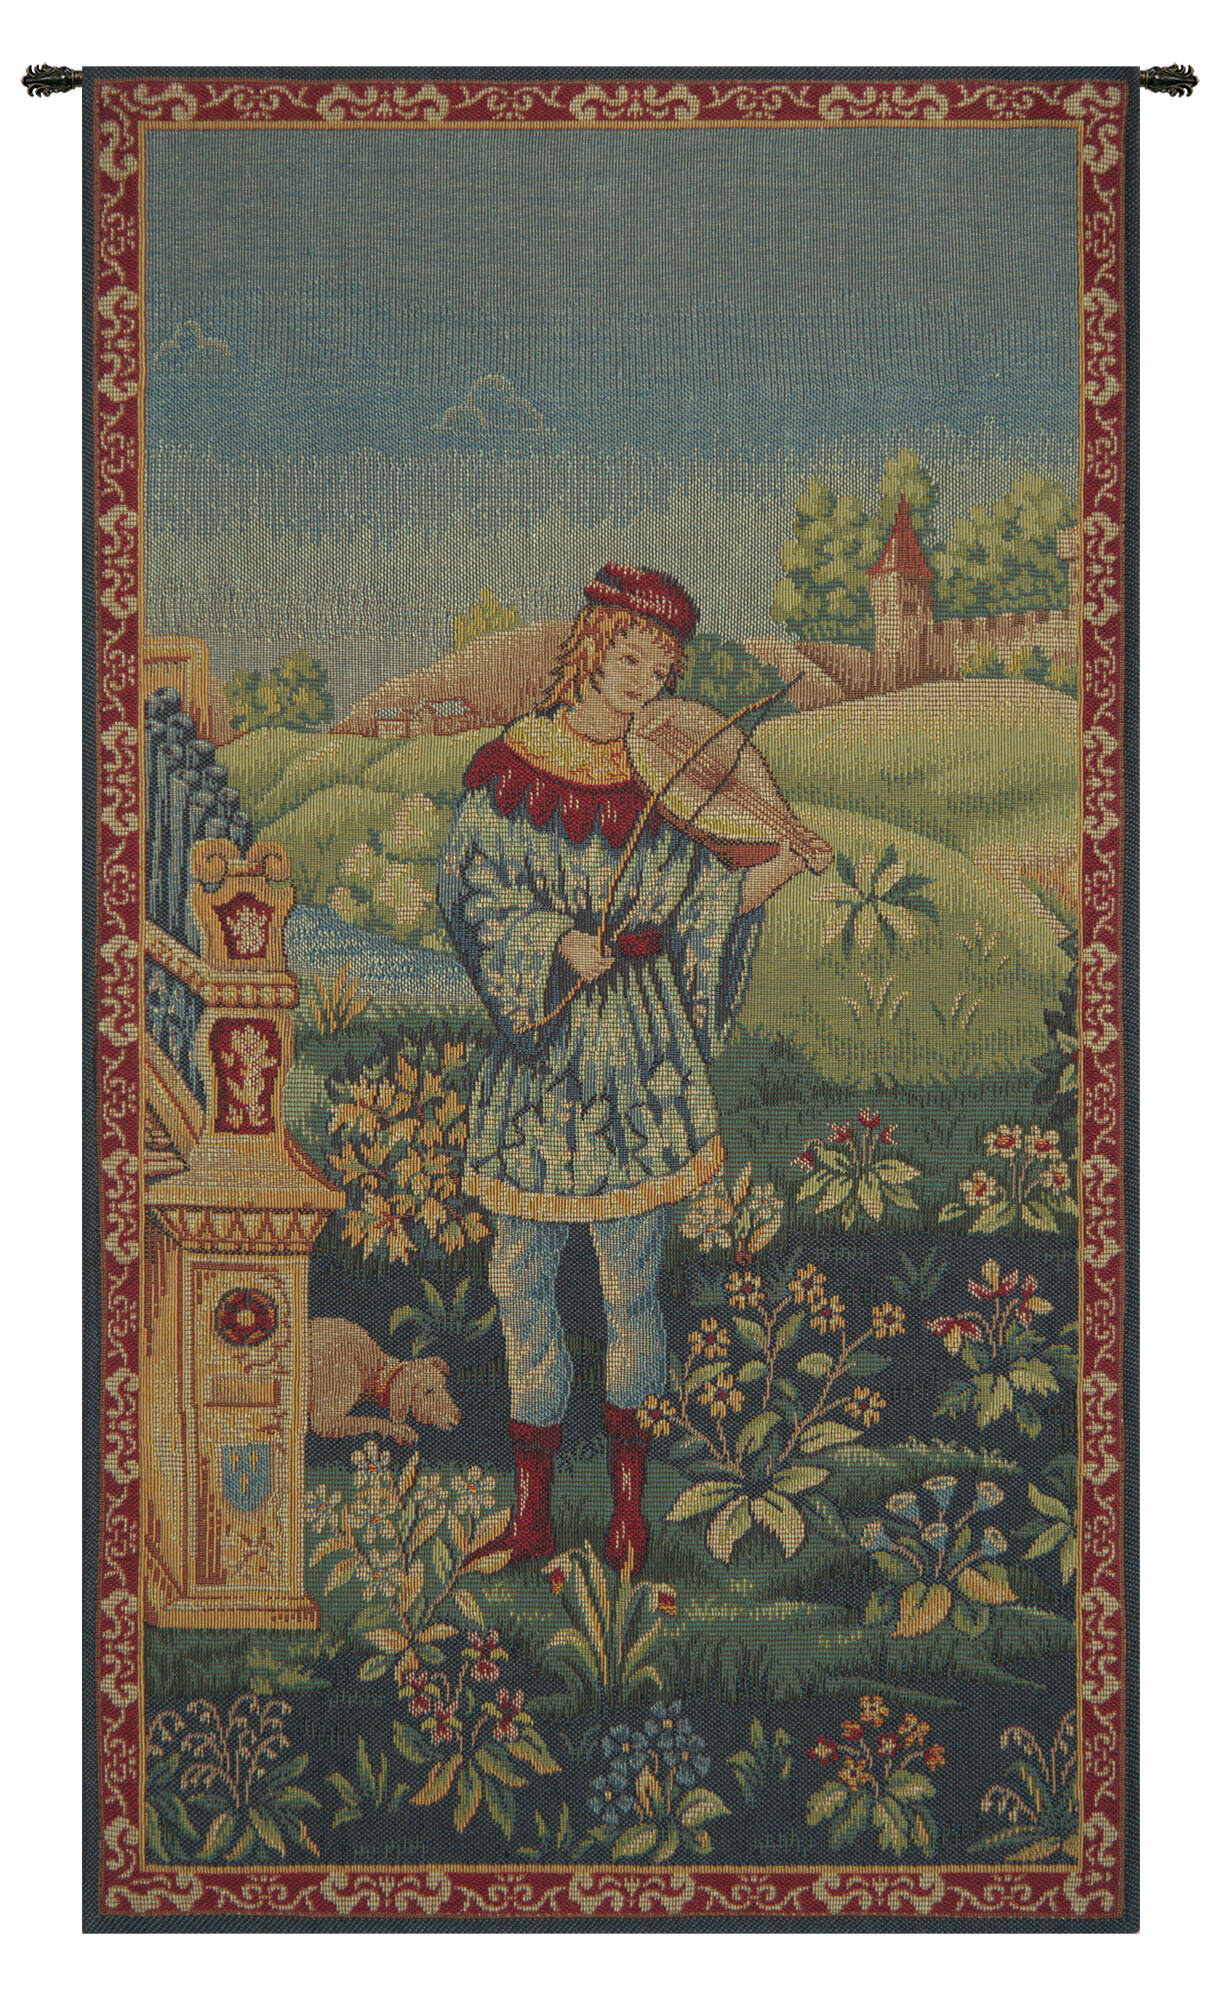 Blended Fabric Le Troubadour Tapestry With Regard To Most Current Blended Fabric The Pomona Wall Hangings (View 1 of 20)